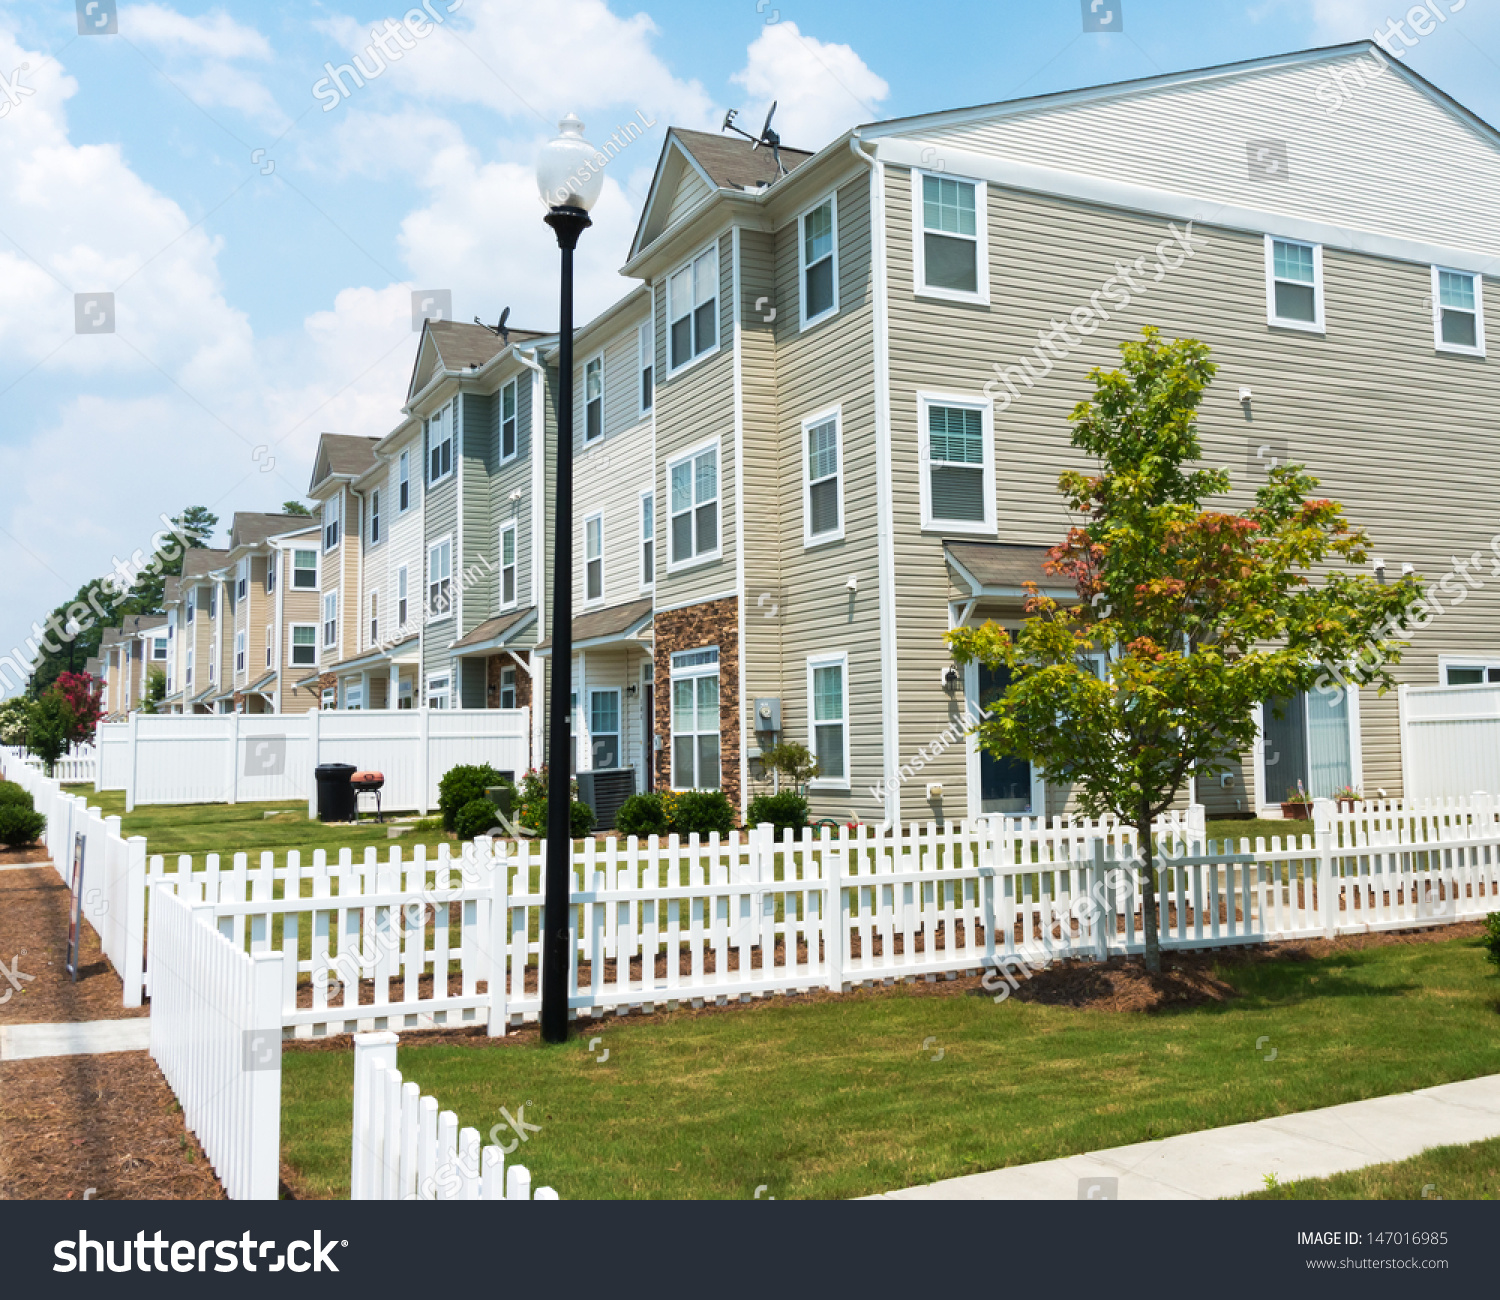 Suburban three story town homes stock photo 147016985 for 3 story townhomes